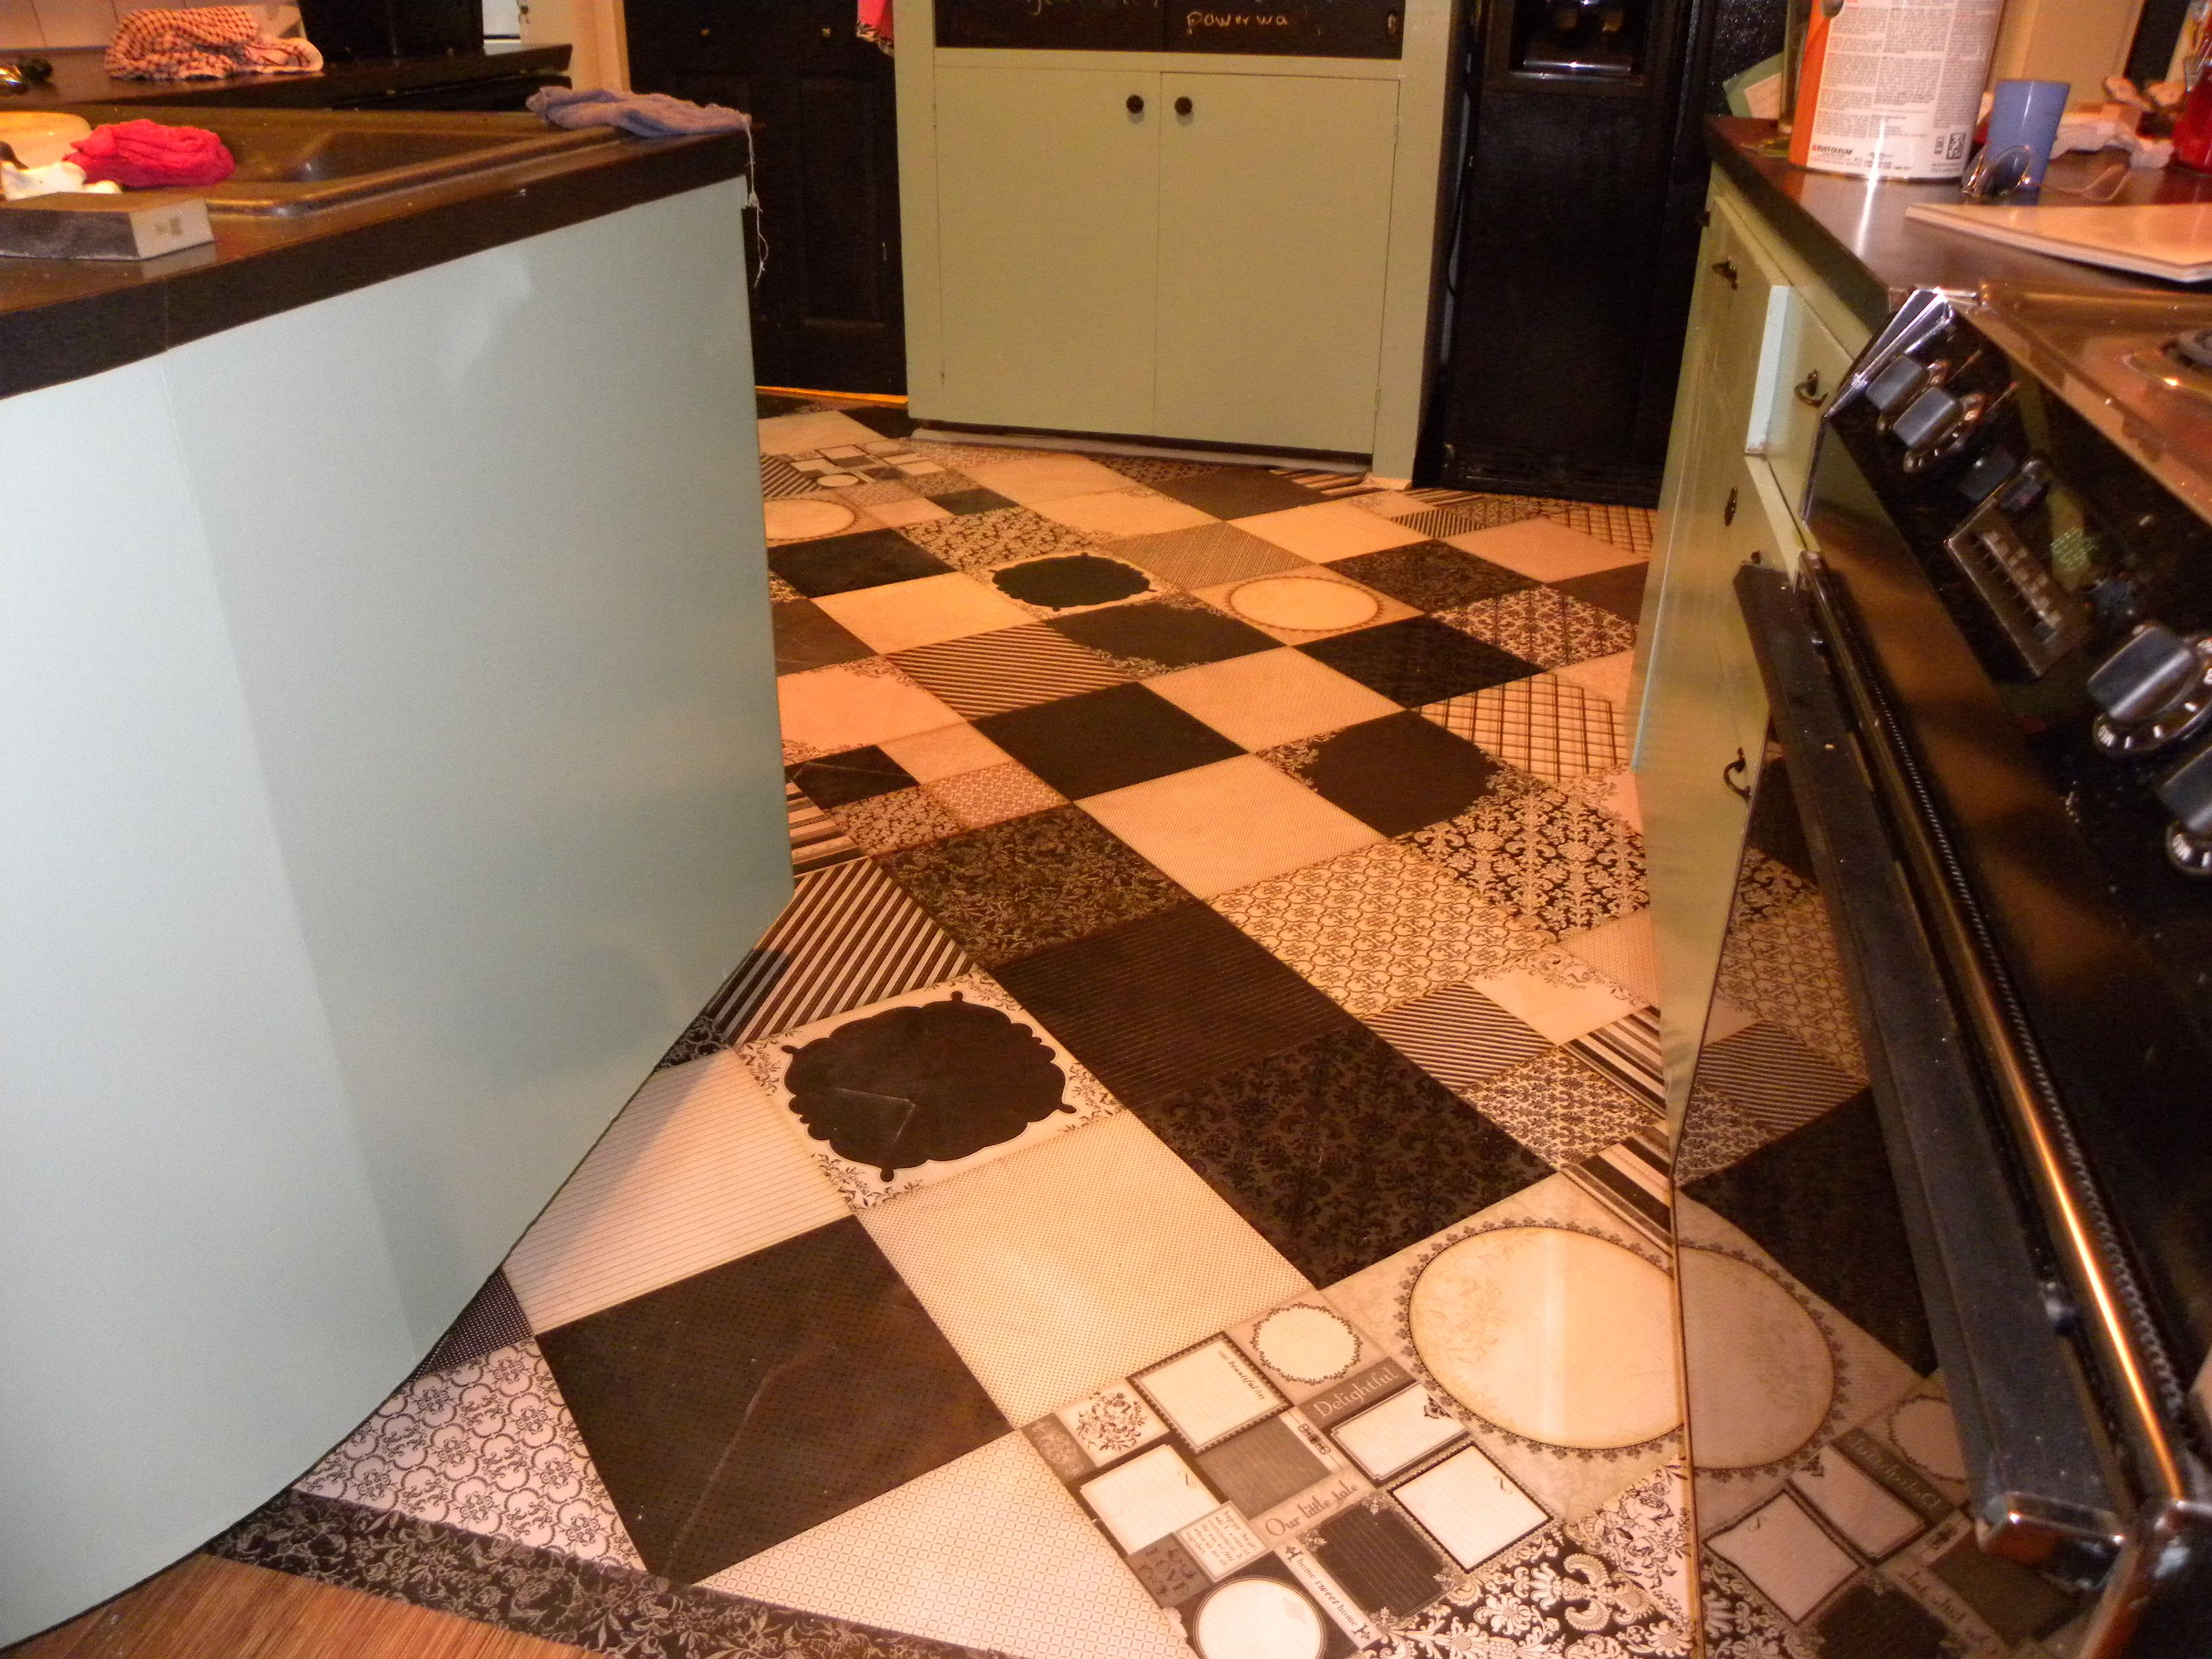 Vintage Kitchen Facelift With Scrapbook Paper Patchwork Floor Awesome Easy Cheap Diy Flooring Kitchen Facelift Flooring